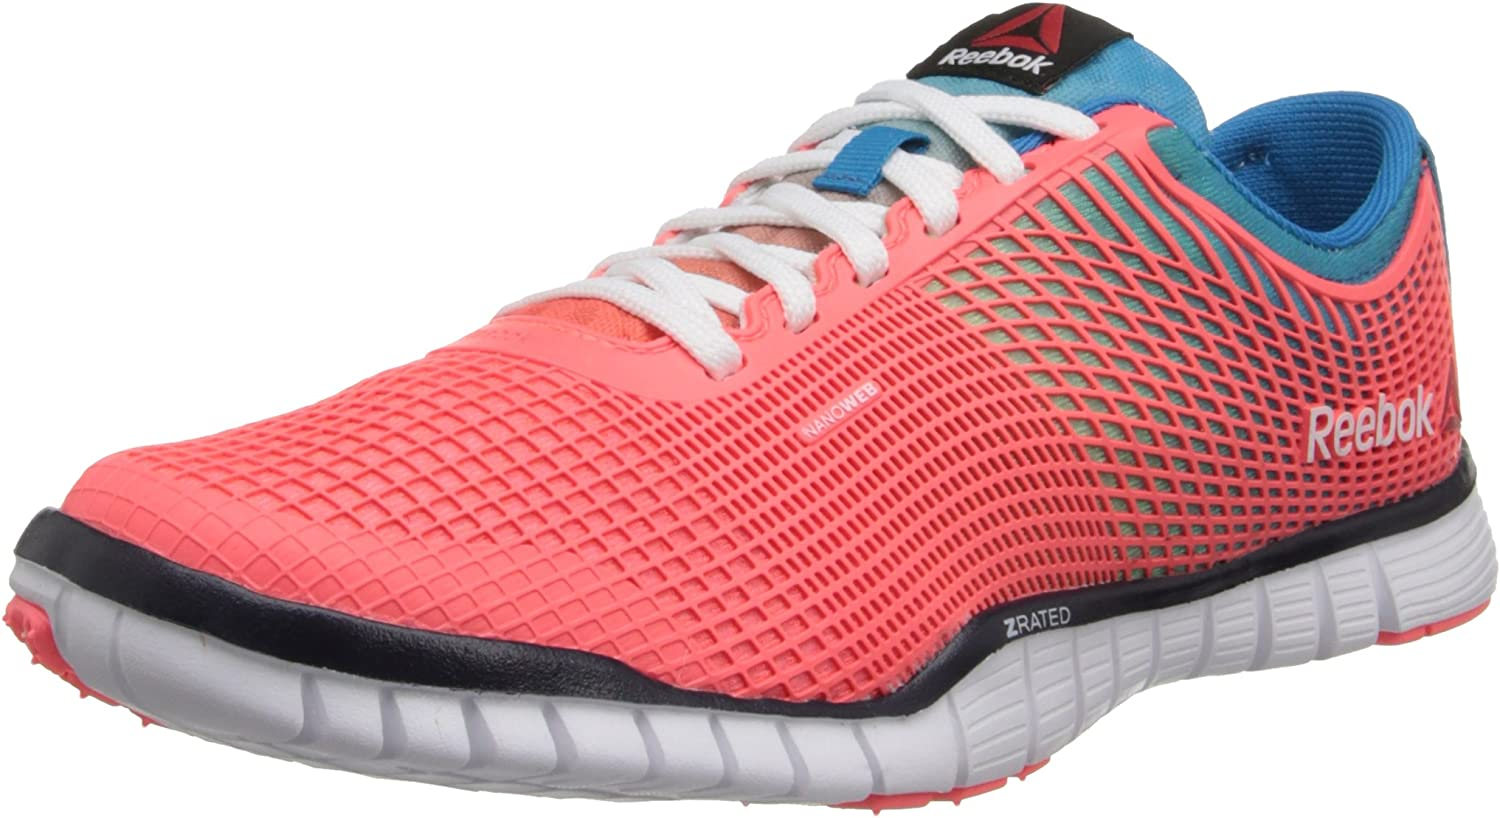 reebok z rated womens